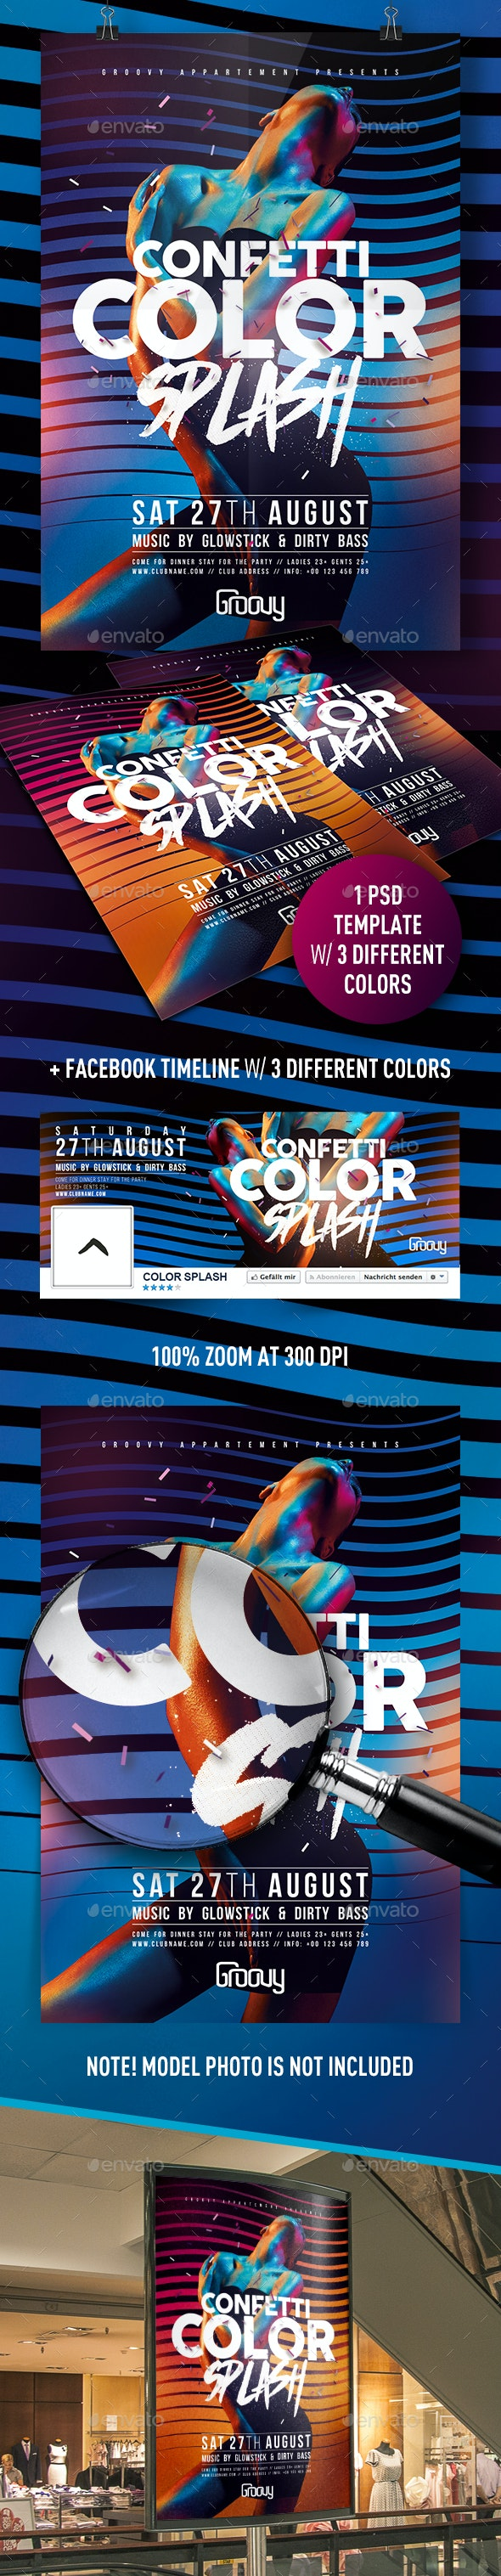 Confetti Color Splash Flyer - Clubs & Parties Events